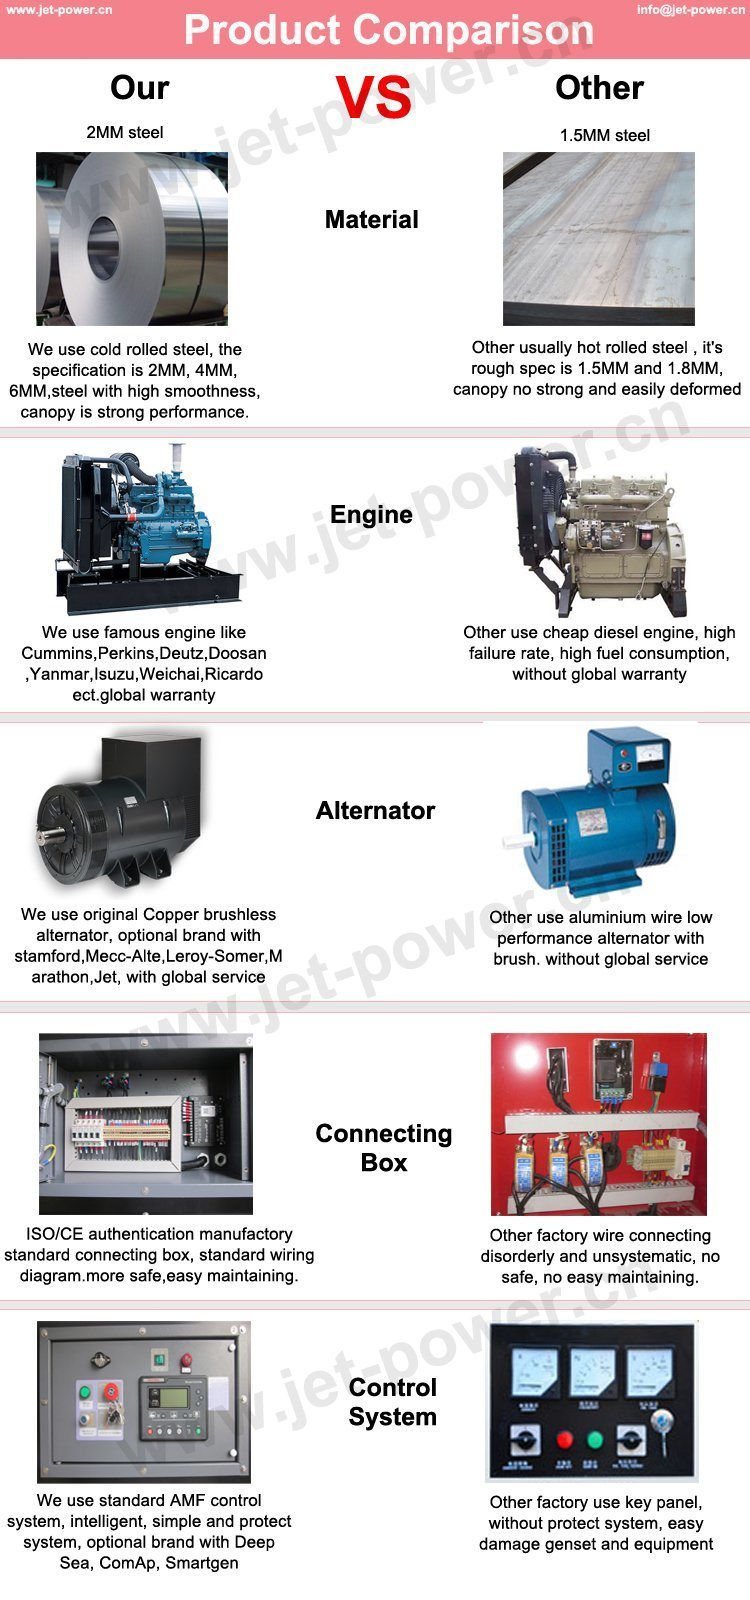 Perkins Engine Water Cooled Diesel Generators 160kw 200kva Denyo Generator Wiring Diagram Warranty One Year Or 1000 Hoursdiesel Set Whichever Reach First From Exfactory Date 1 During The Guarantee Period